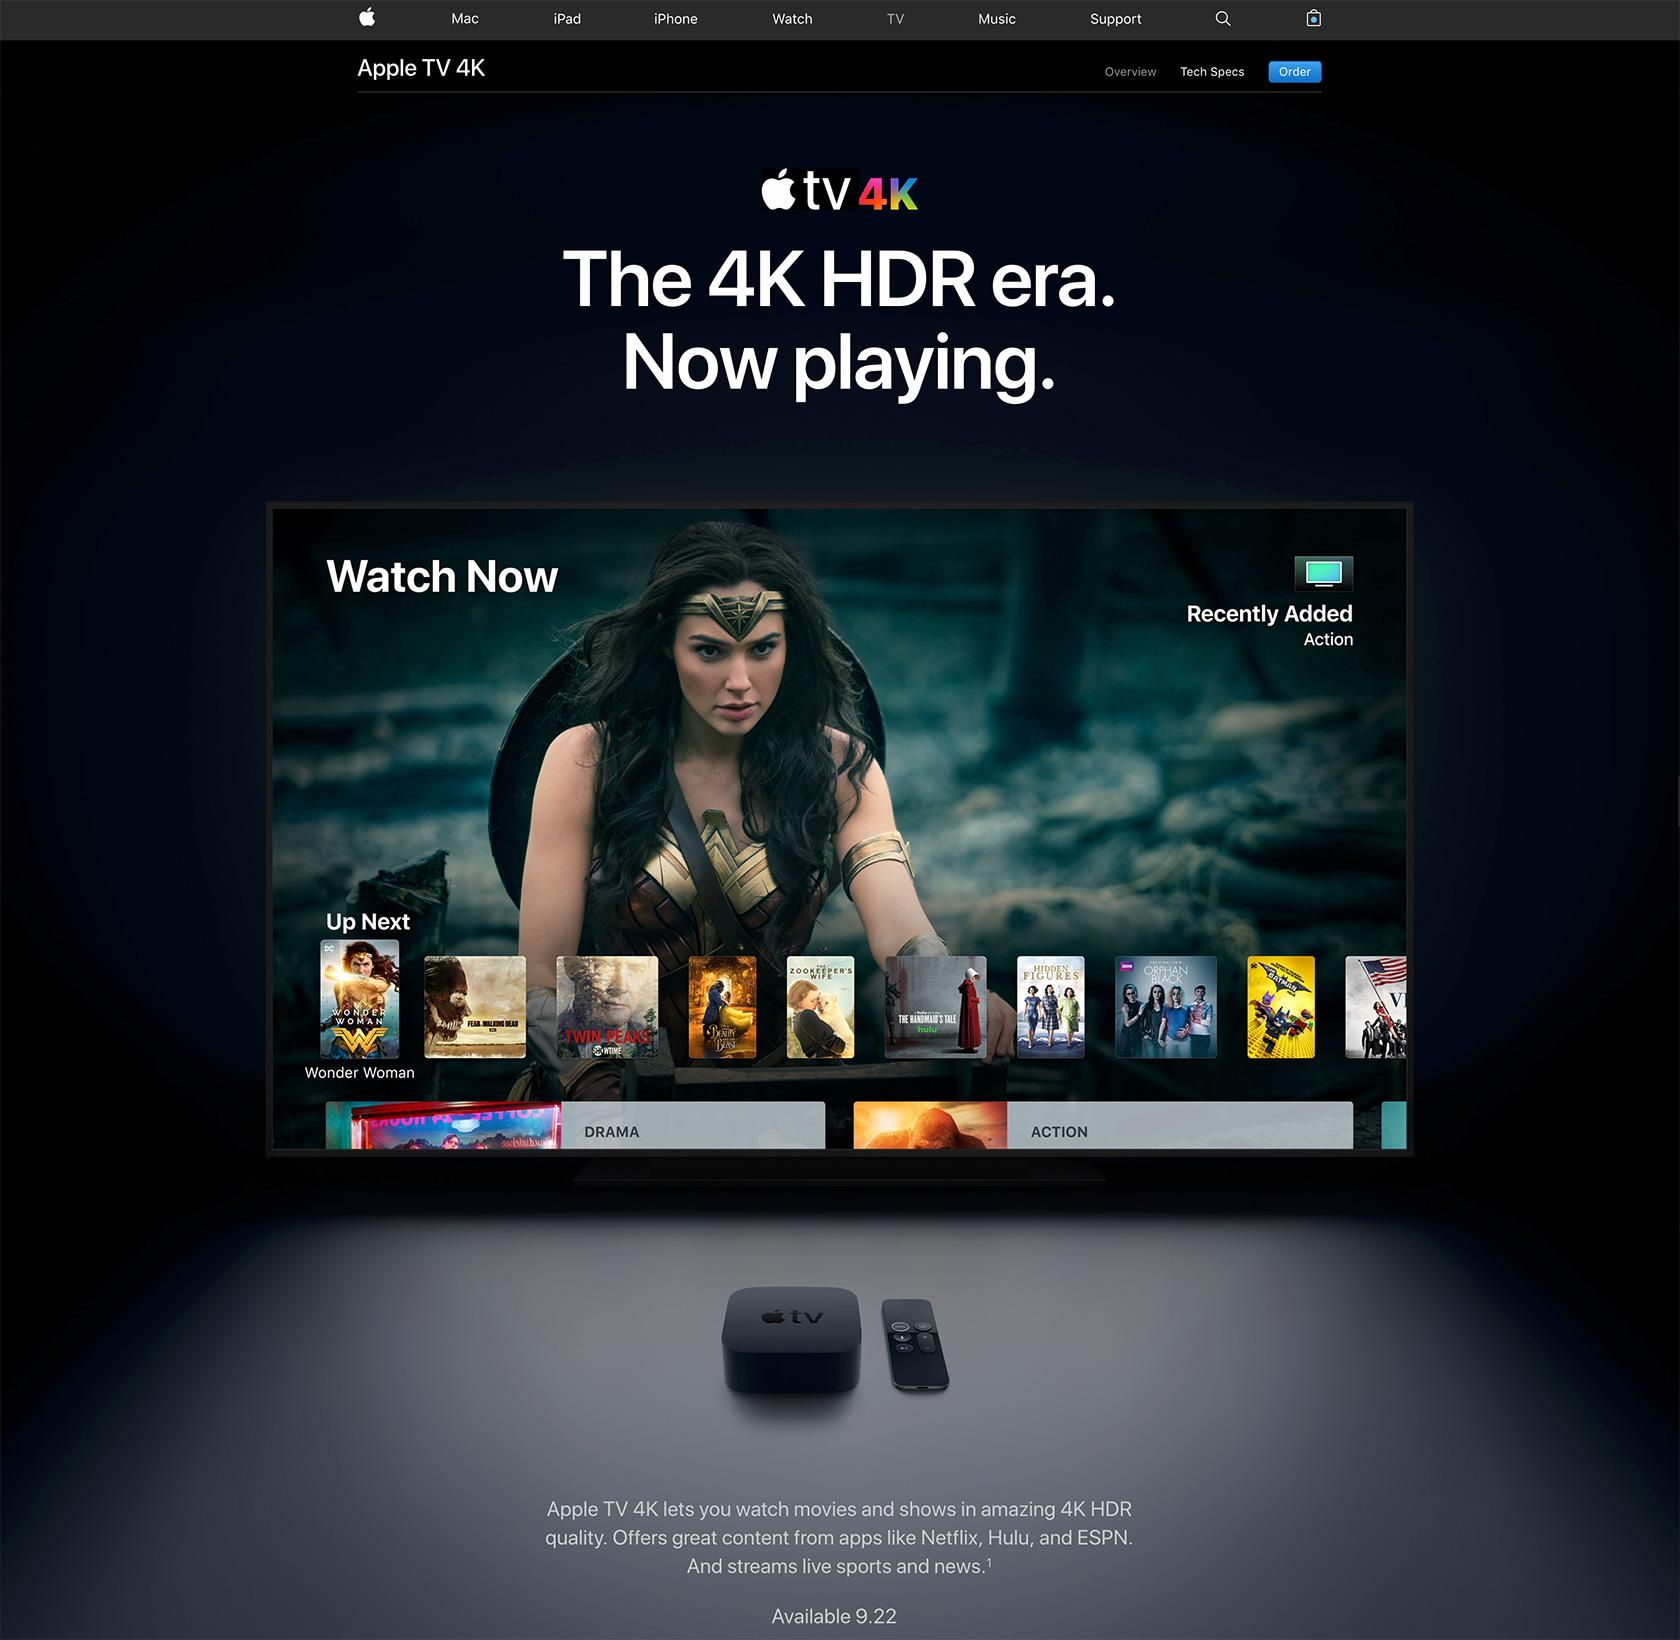 Apple's dark UI choice for Apple TV